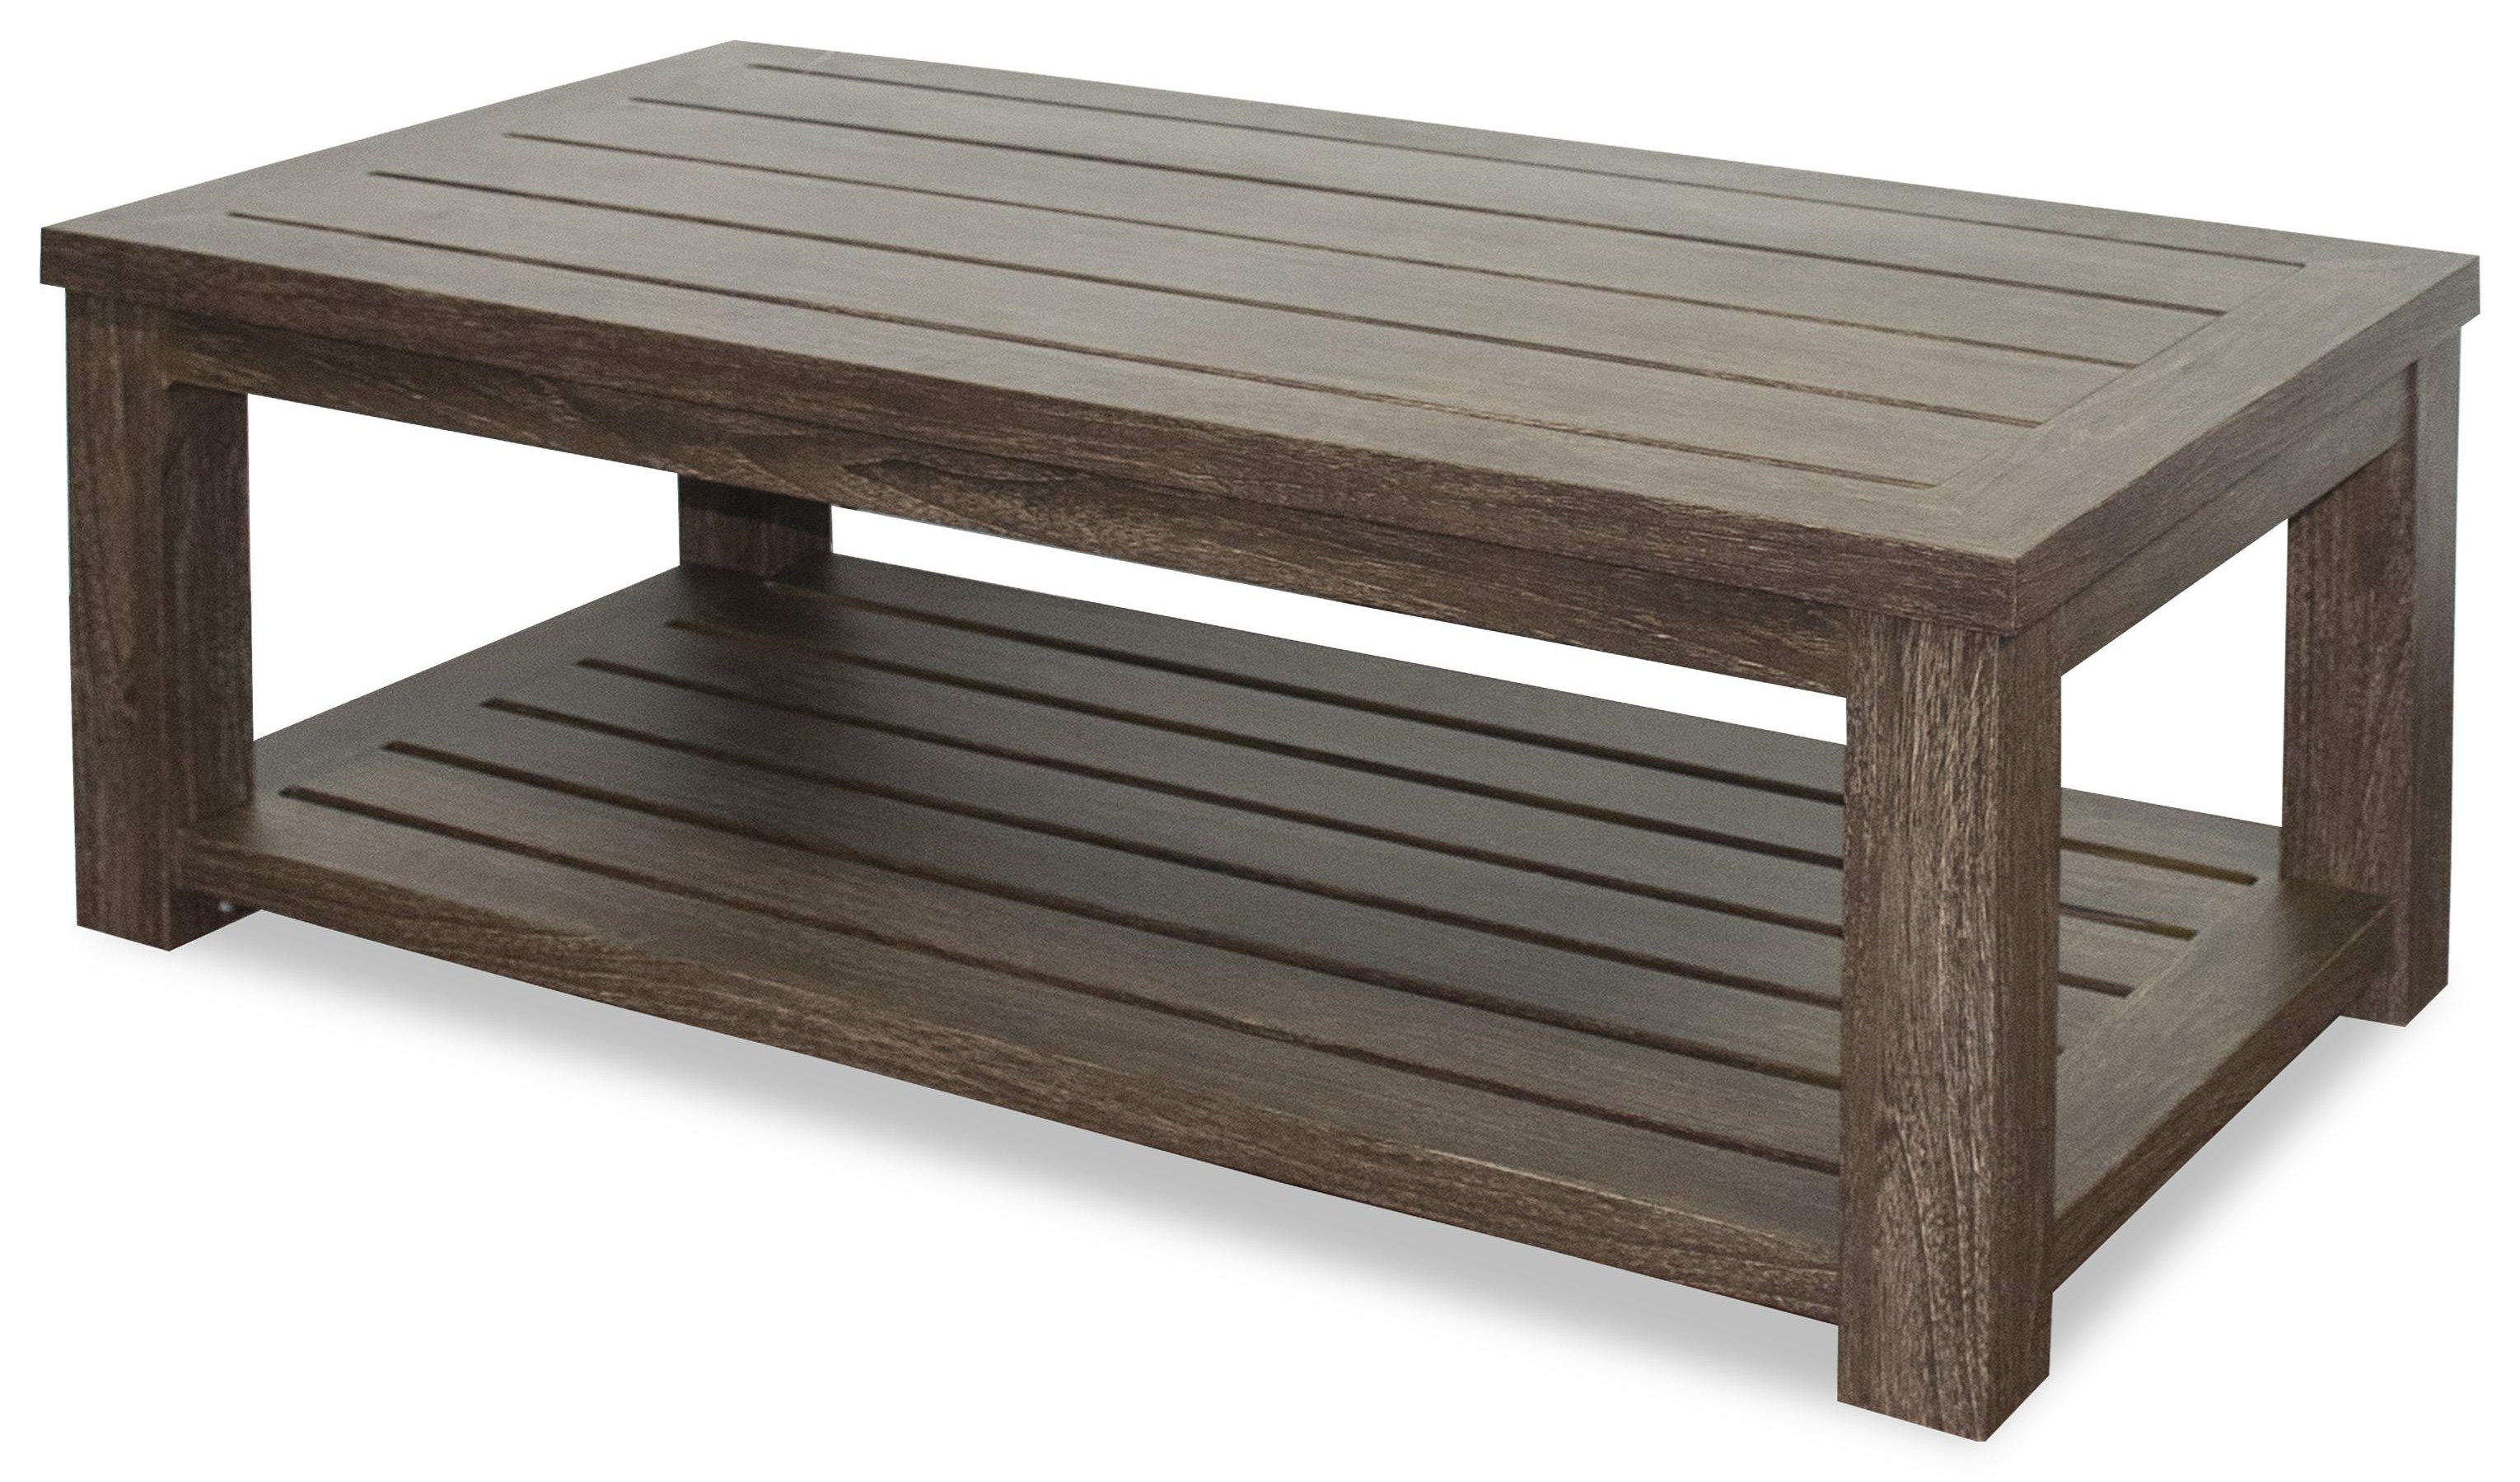 Patio Renaissance Seattle Coffee Table by Patio Renaissance at Johnny Janosik